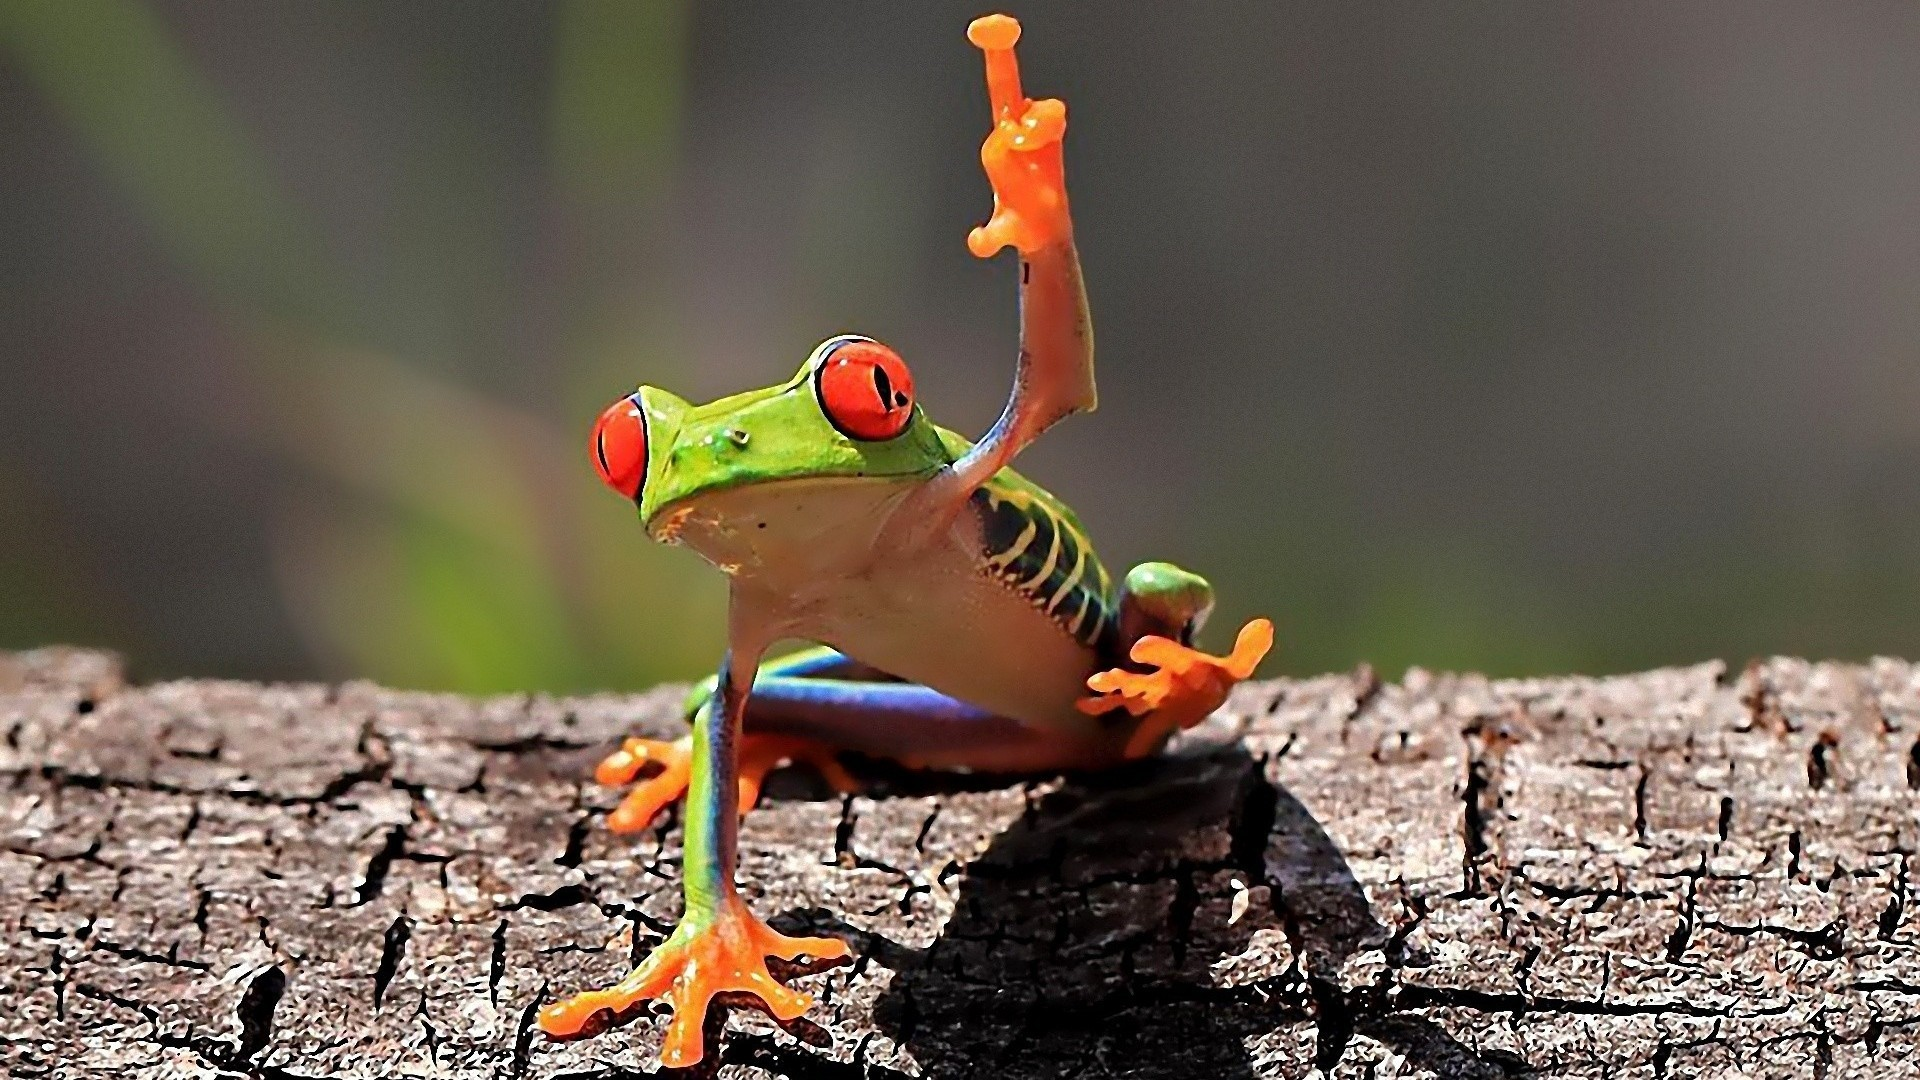 Res: 1920x1080, Tree Frog Wallpapers 11 - 1920 X 1080